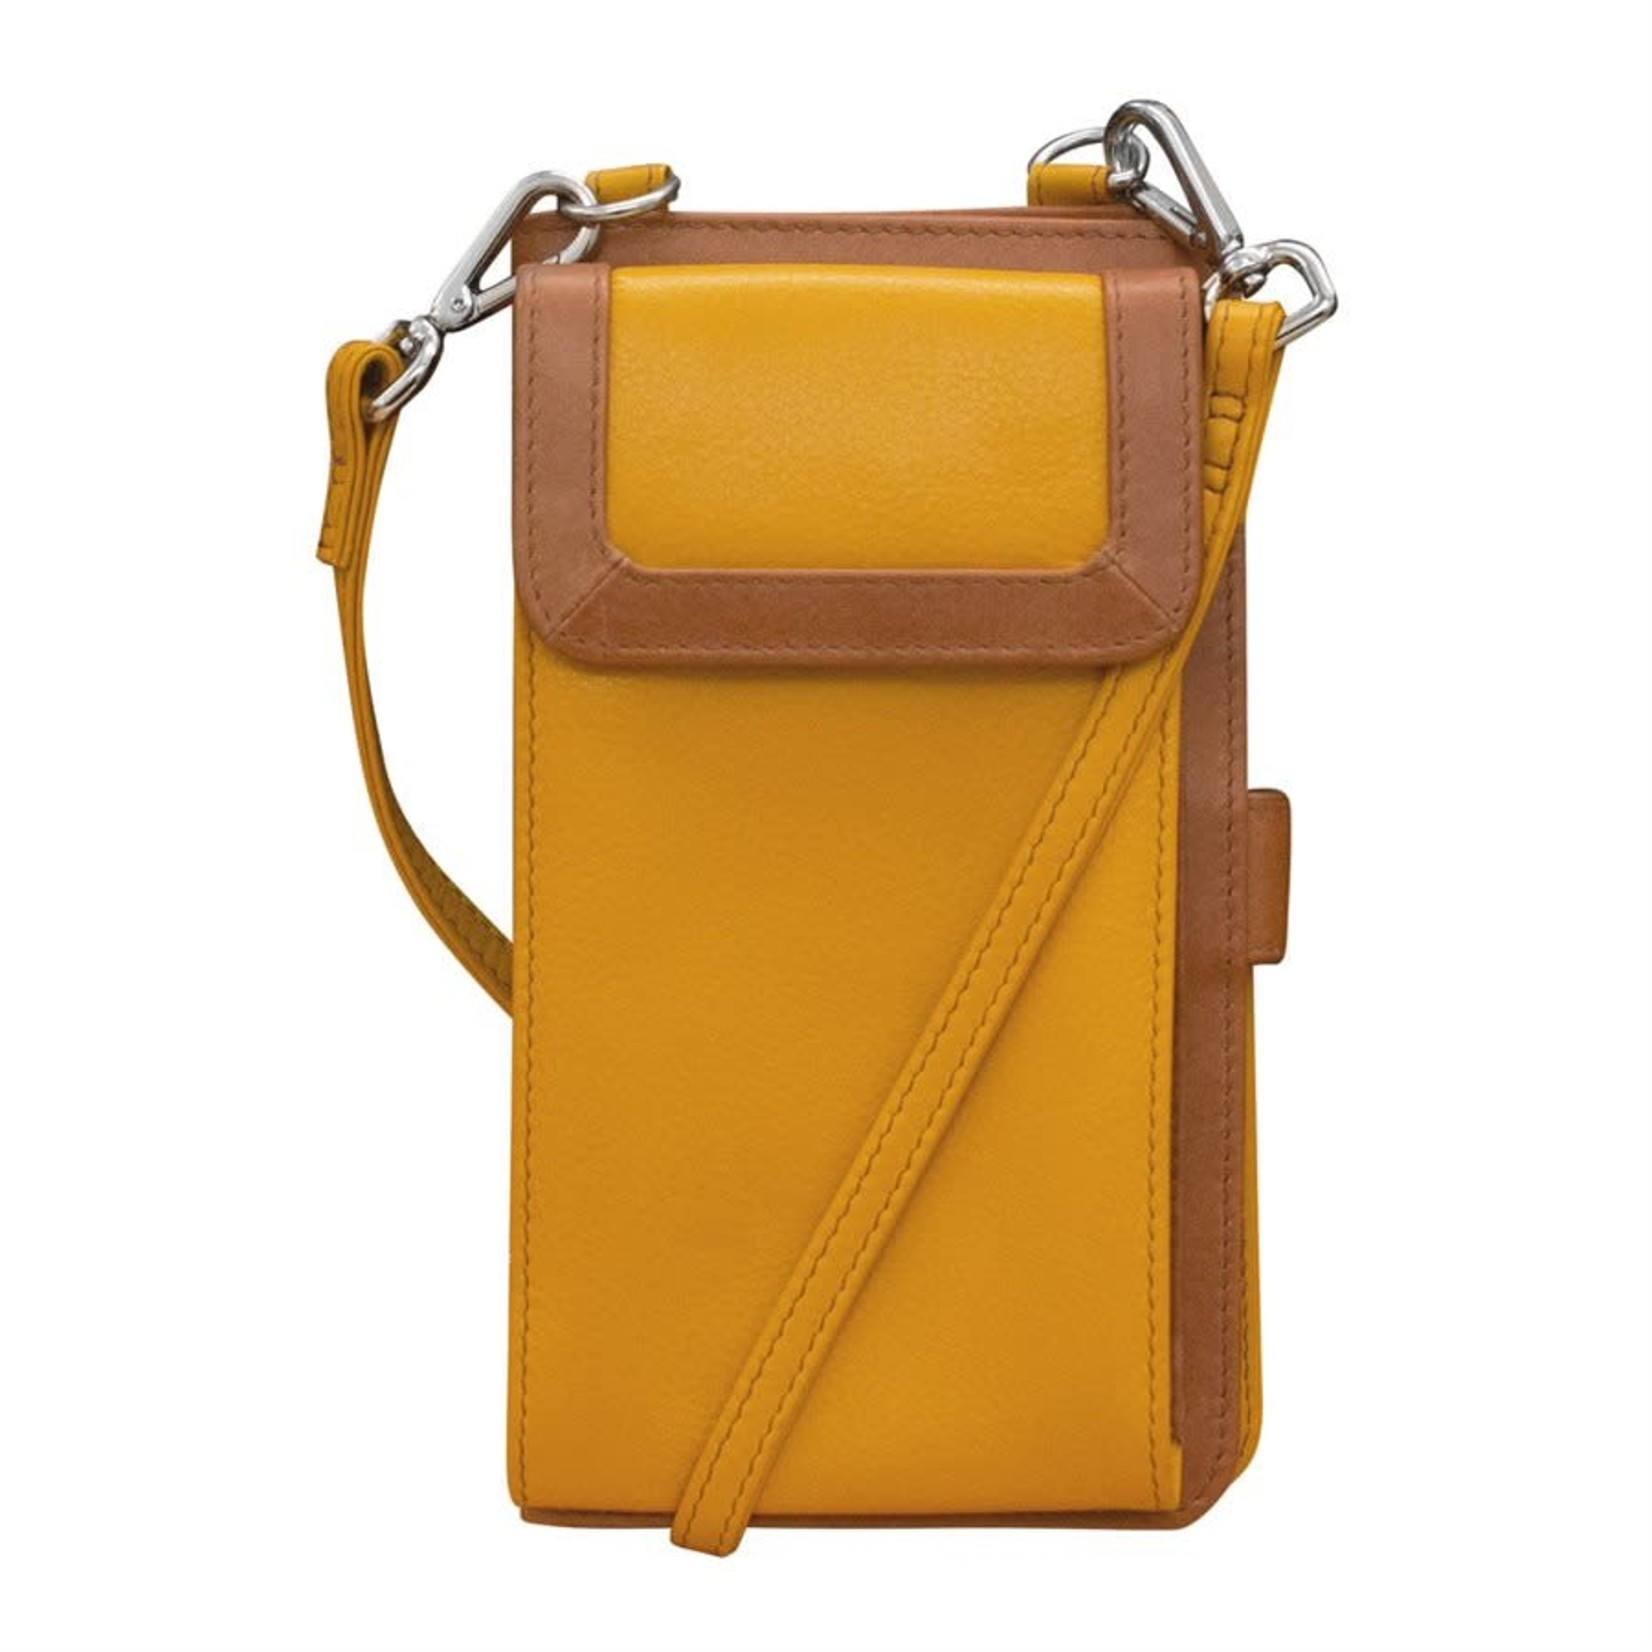 Leather Handbags and Accessories 6363 Yellowstone - RFID Organizer Crossbody